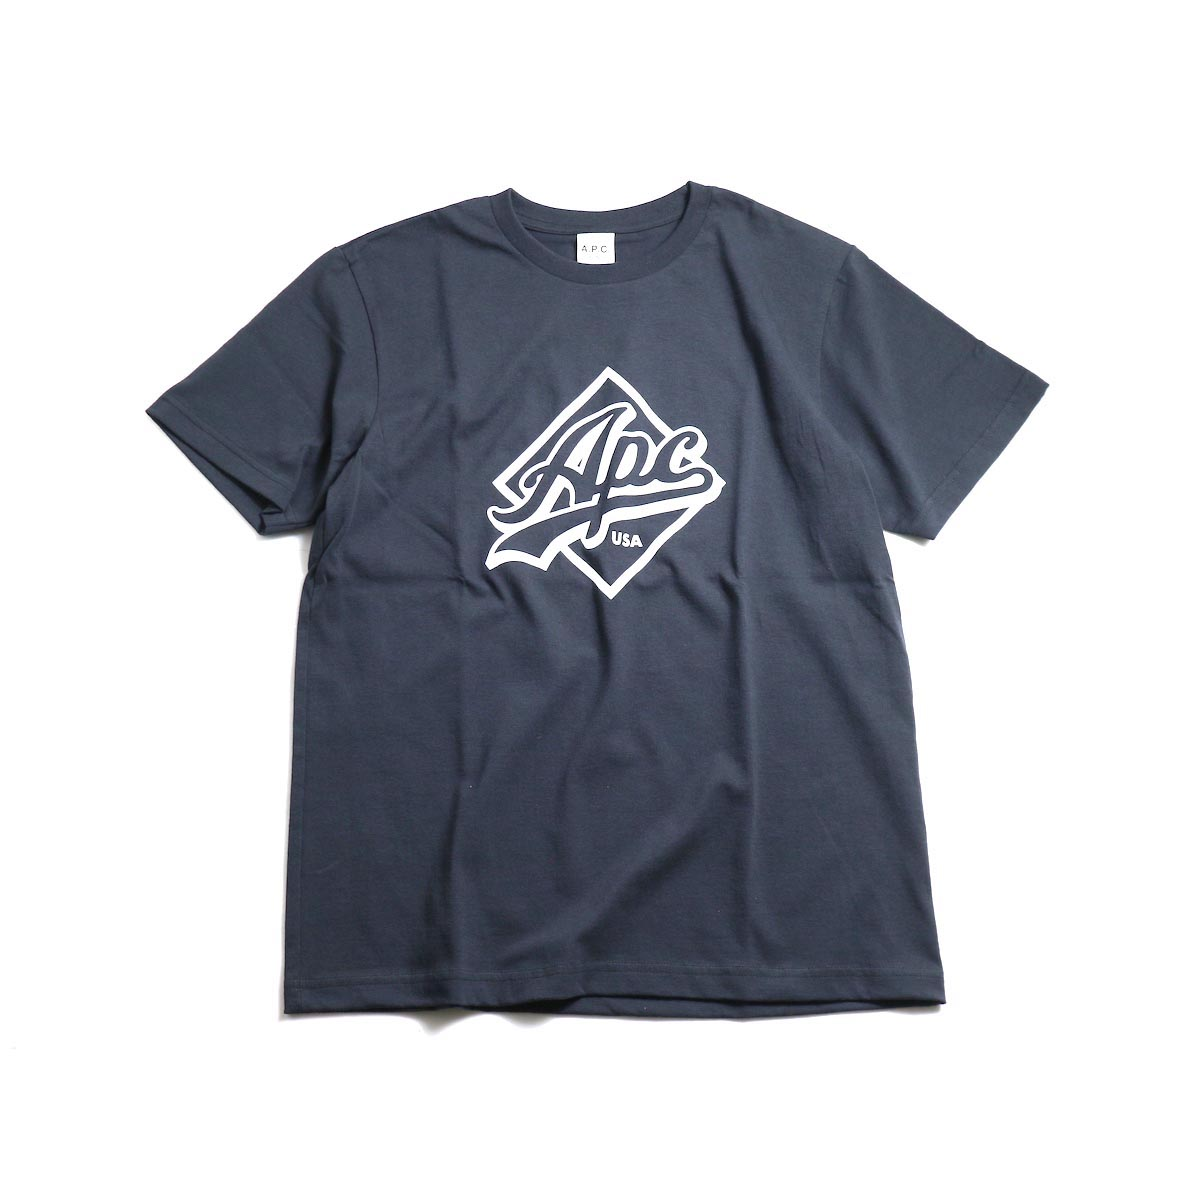 A.P.C. / Tremaine Tシャツ 正面